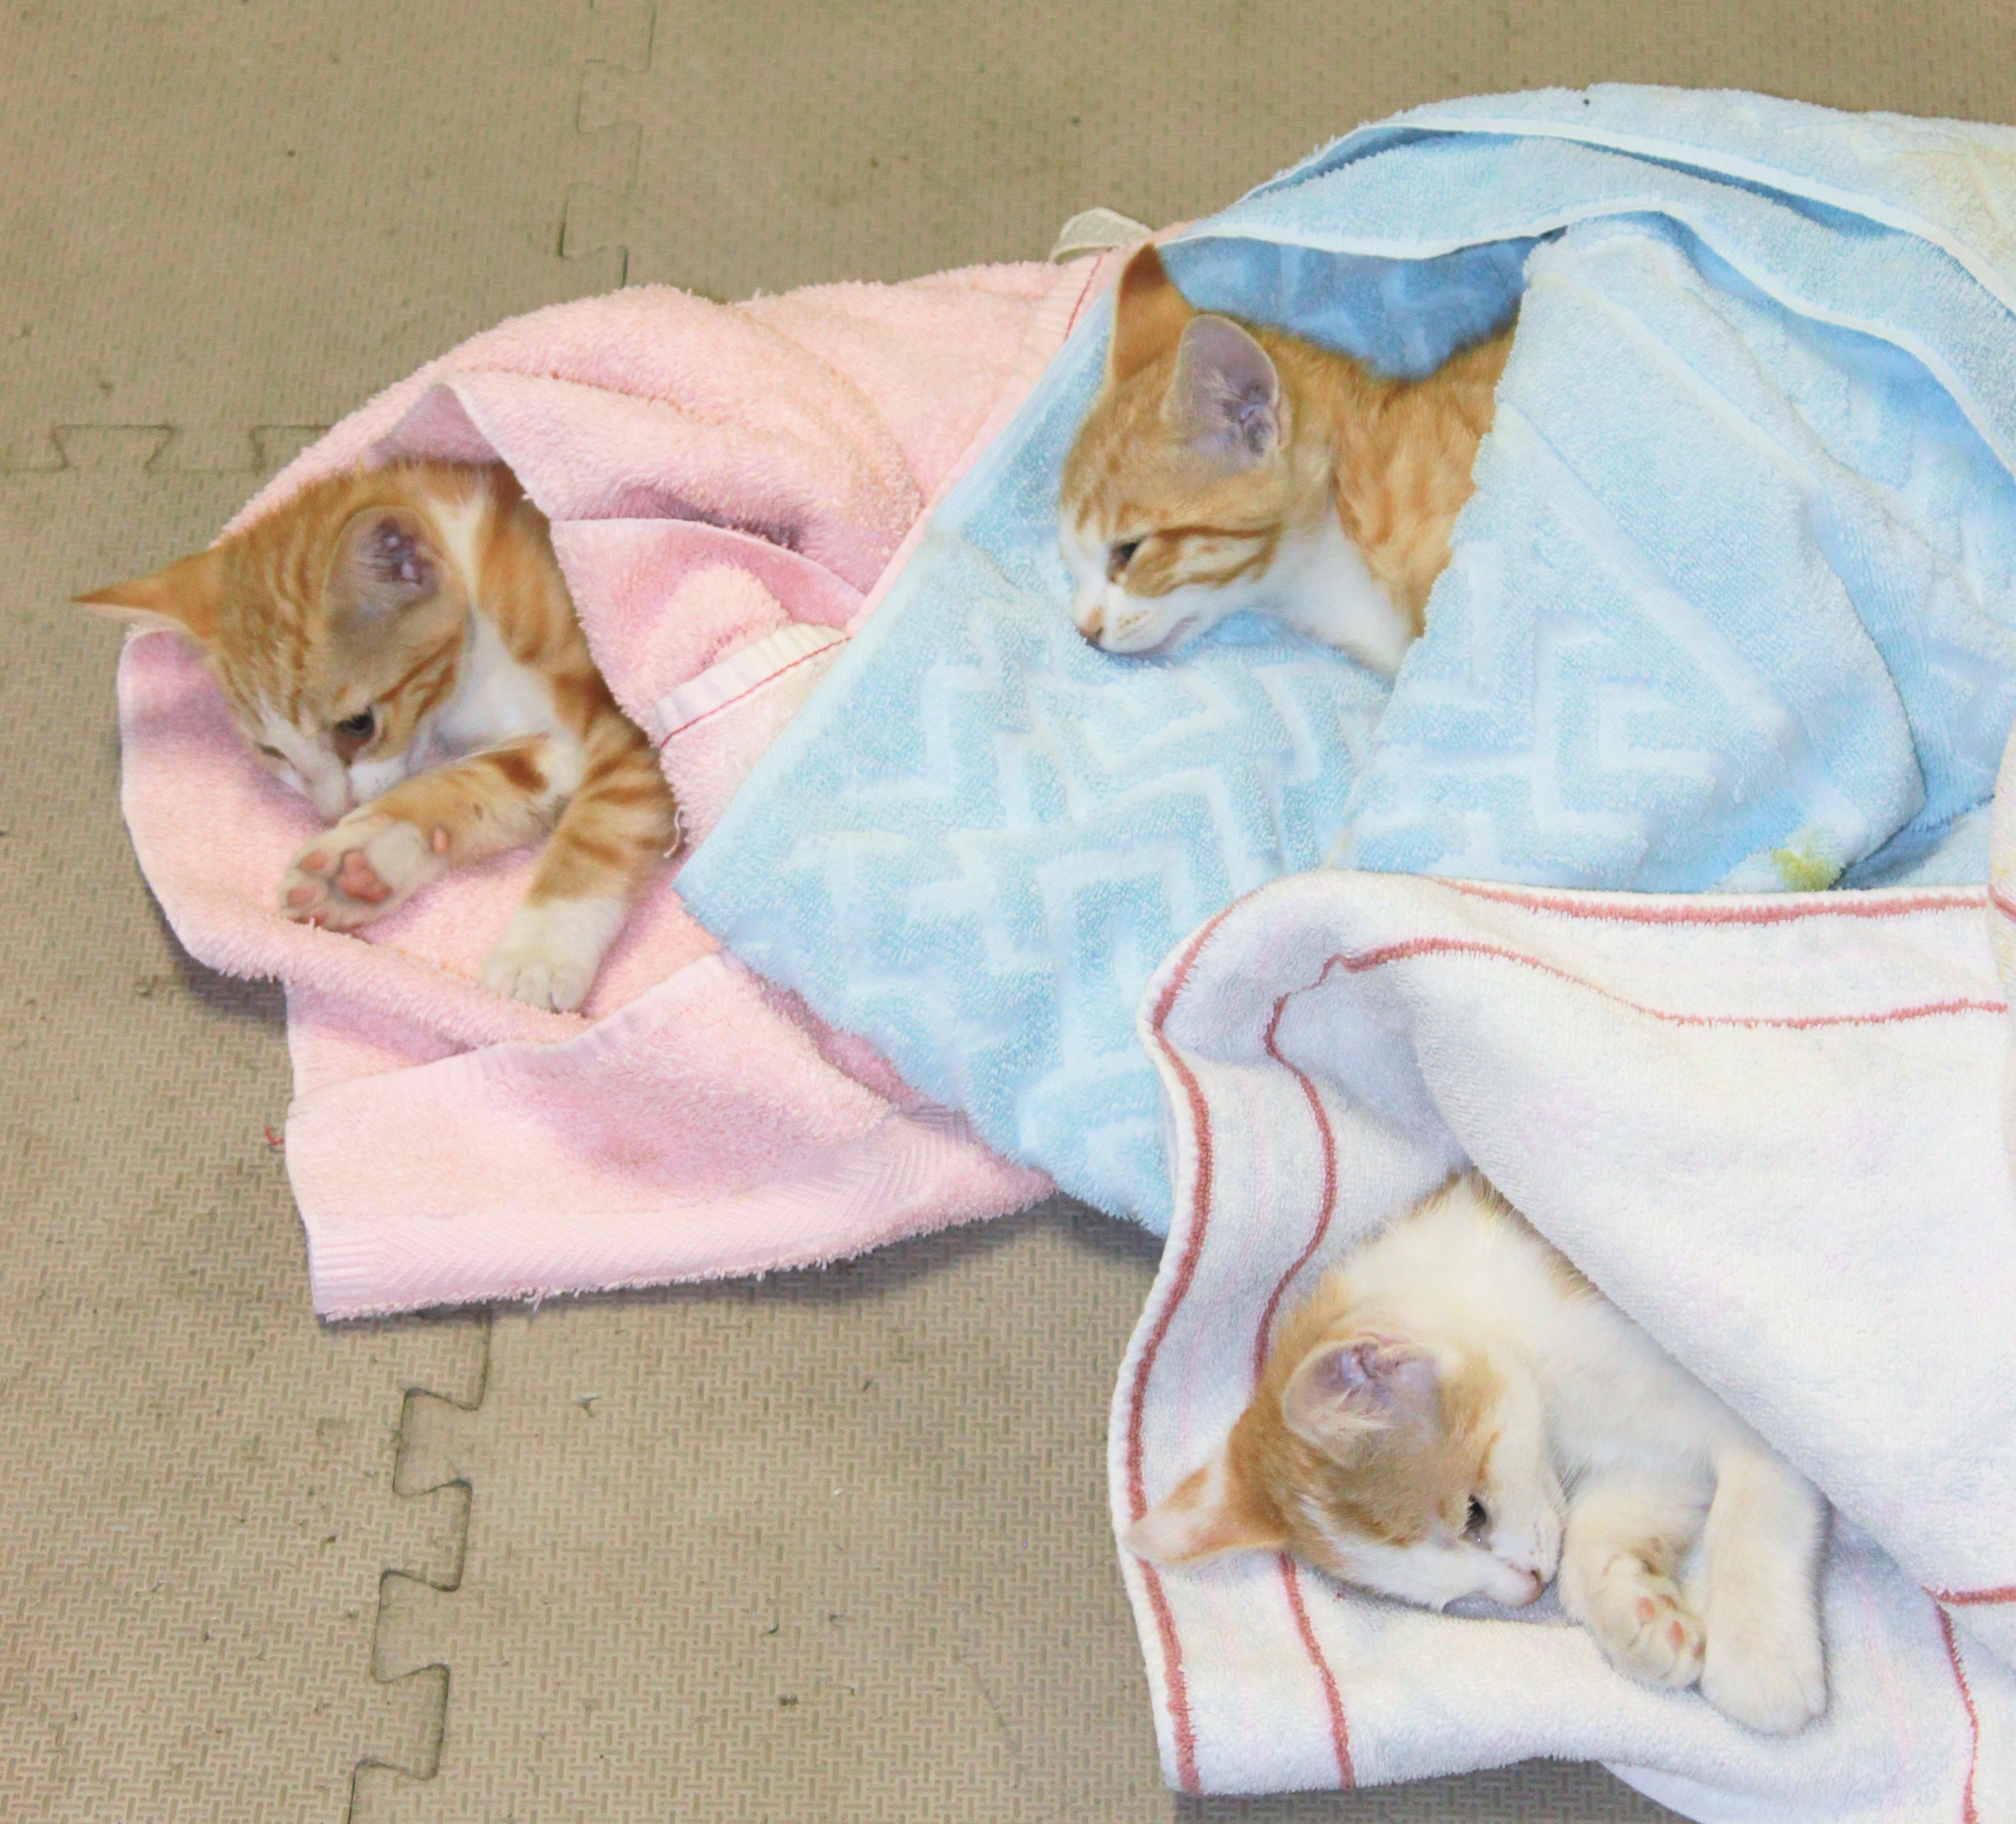 spaying neutering Nearly 70000 puppies and kittens are born each day in the united states, which  is way more than can ever be placed in loving homes by spaying and neutering .